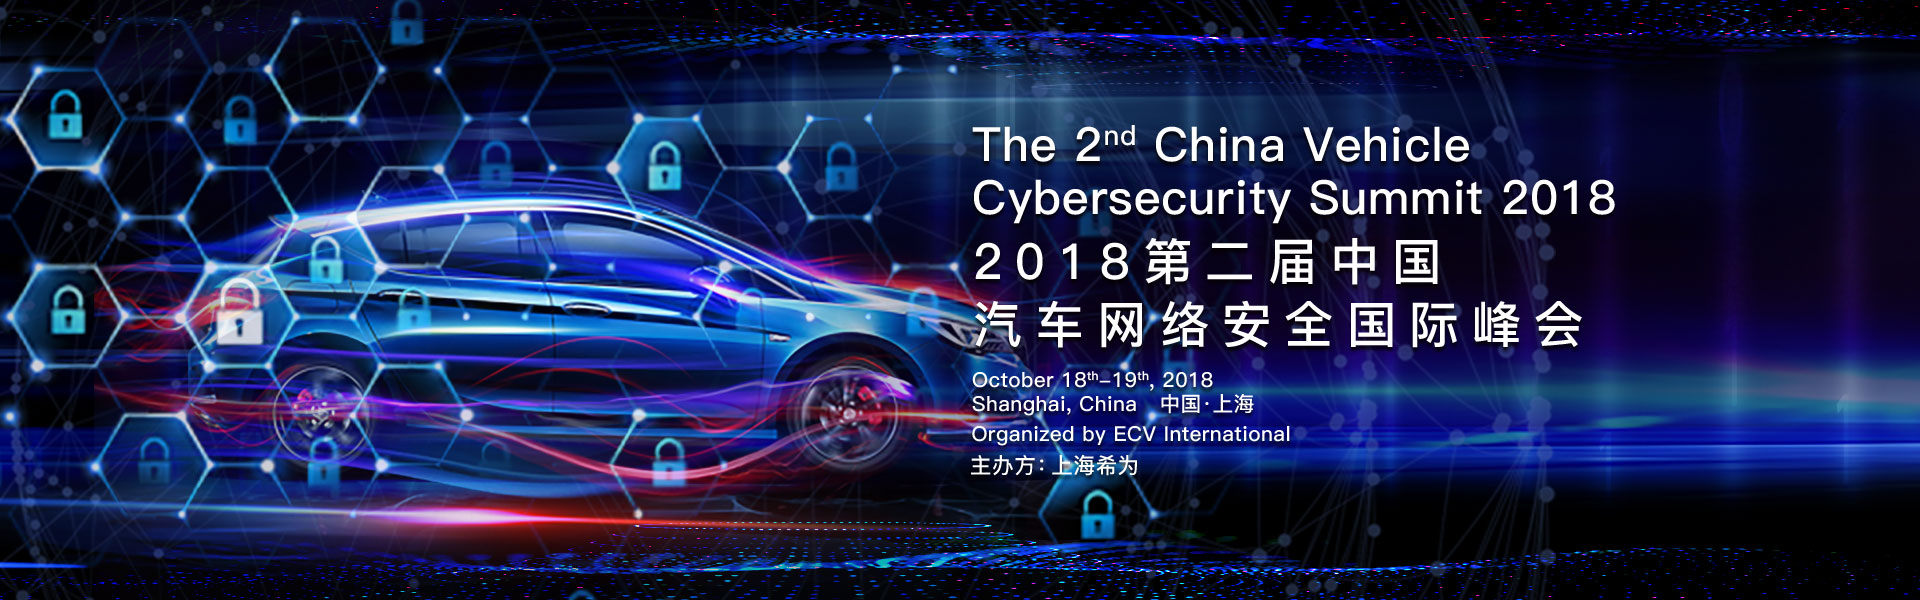 The 2nd China Vehicle Cybersecurity Summit 2018